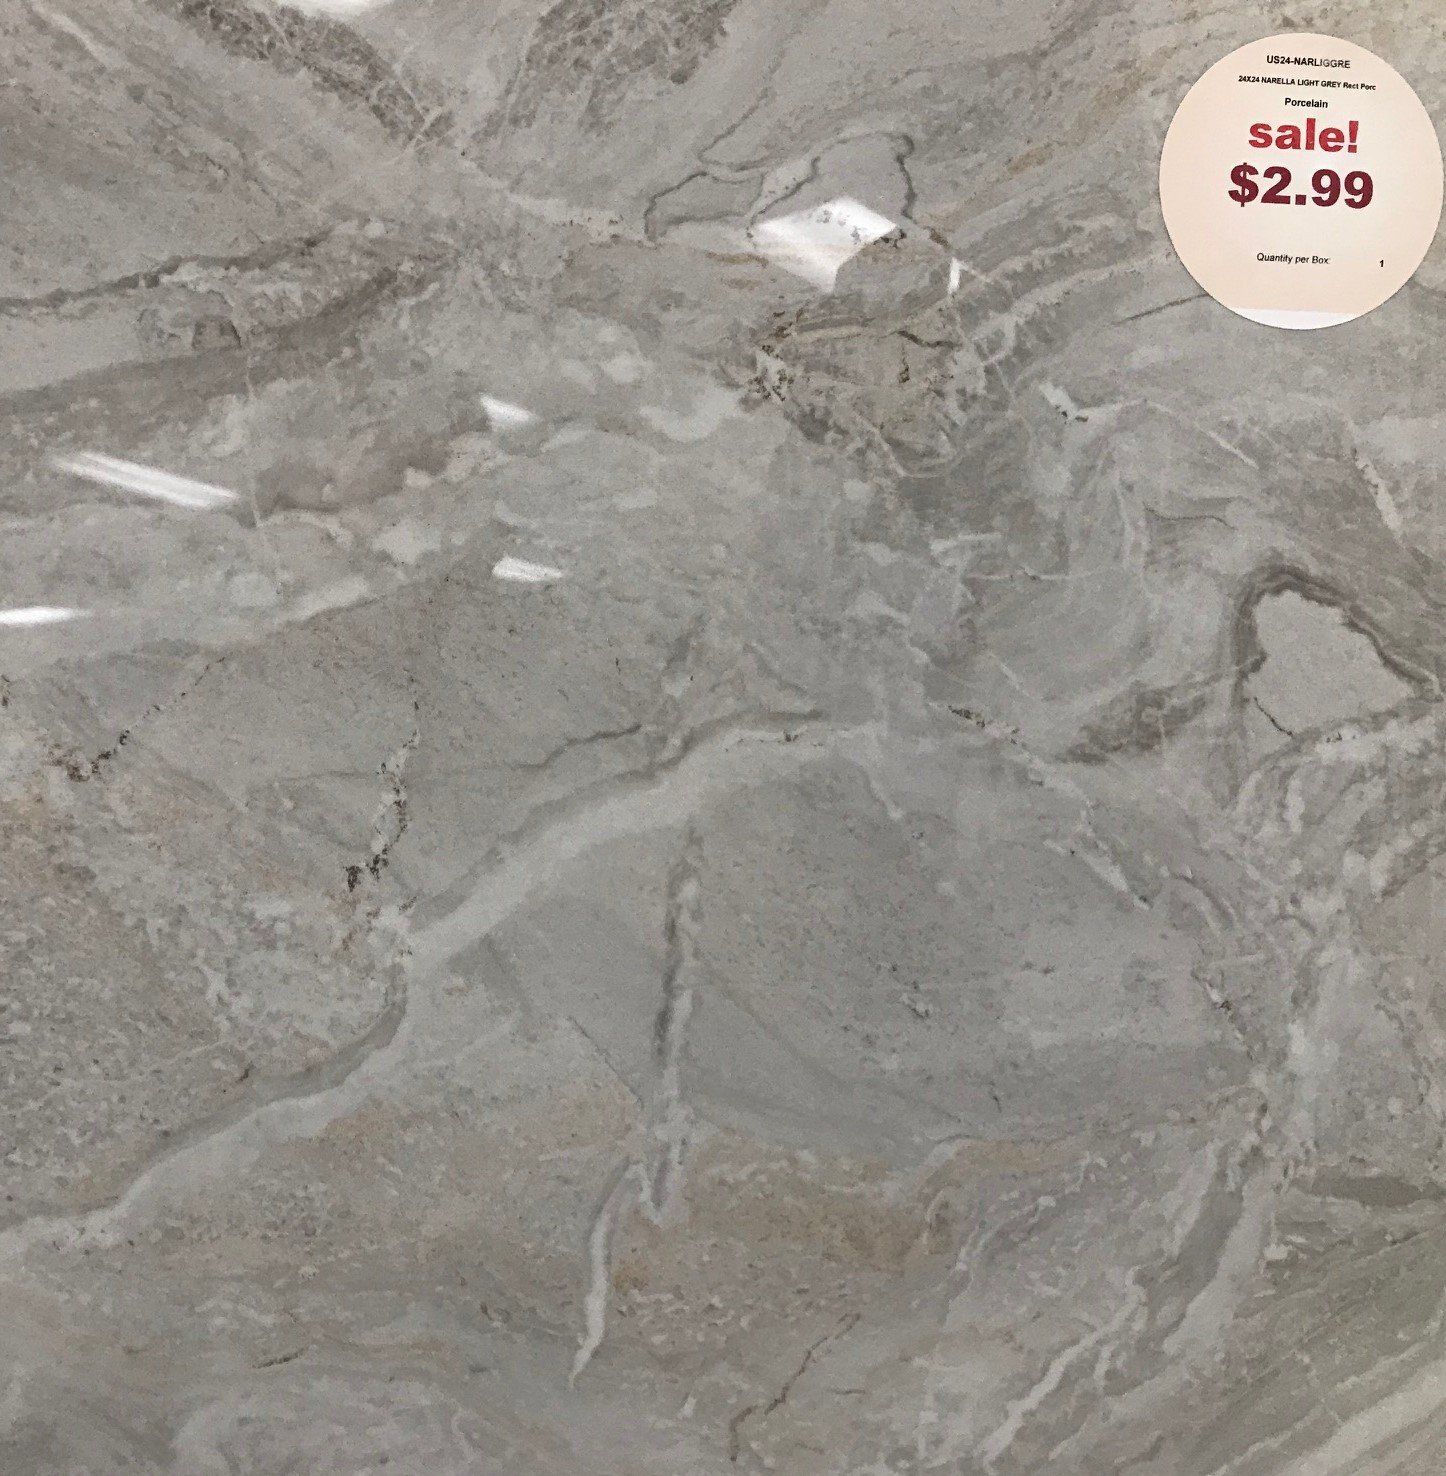 Polished, Rectified Porcelain 24″x24″ tile for just $2.99 retail